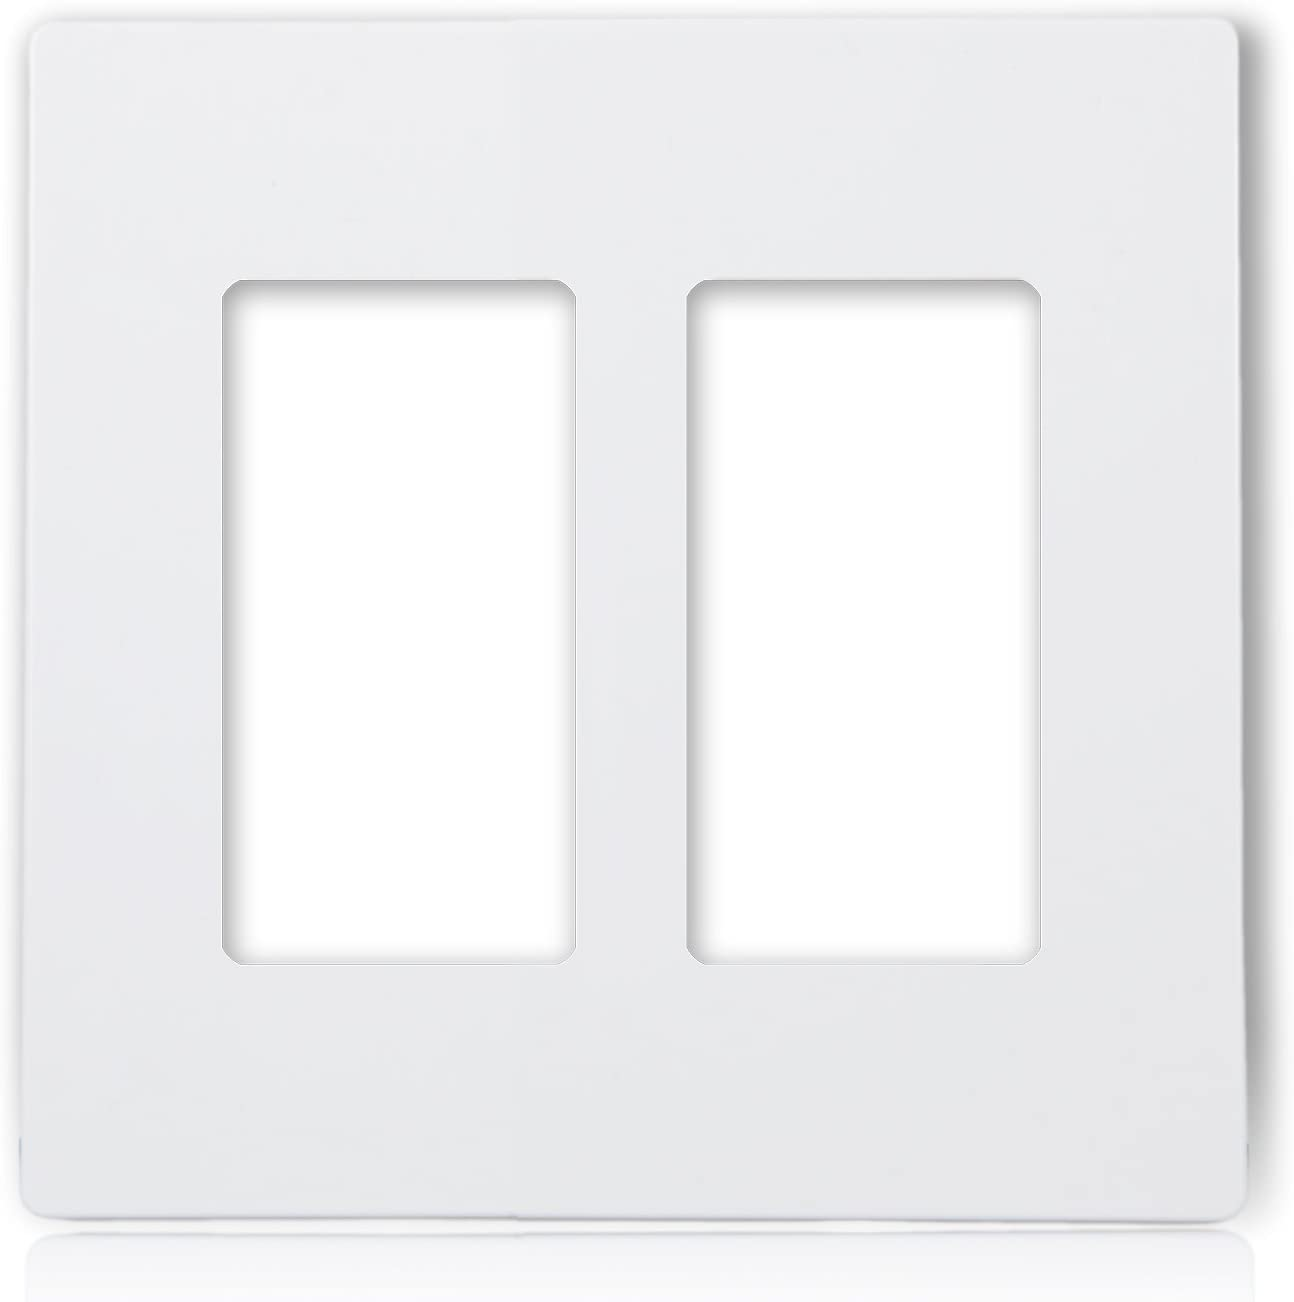 Maxxima 2 Gang Decorative Outlet Screwless Wall Plate, White, Multi Outlet, Standard Size (Pack of 10)